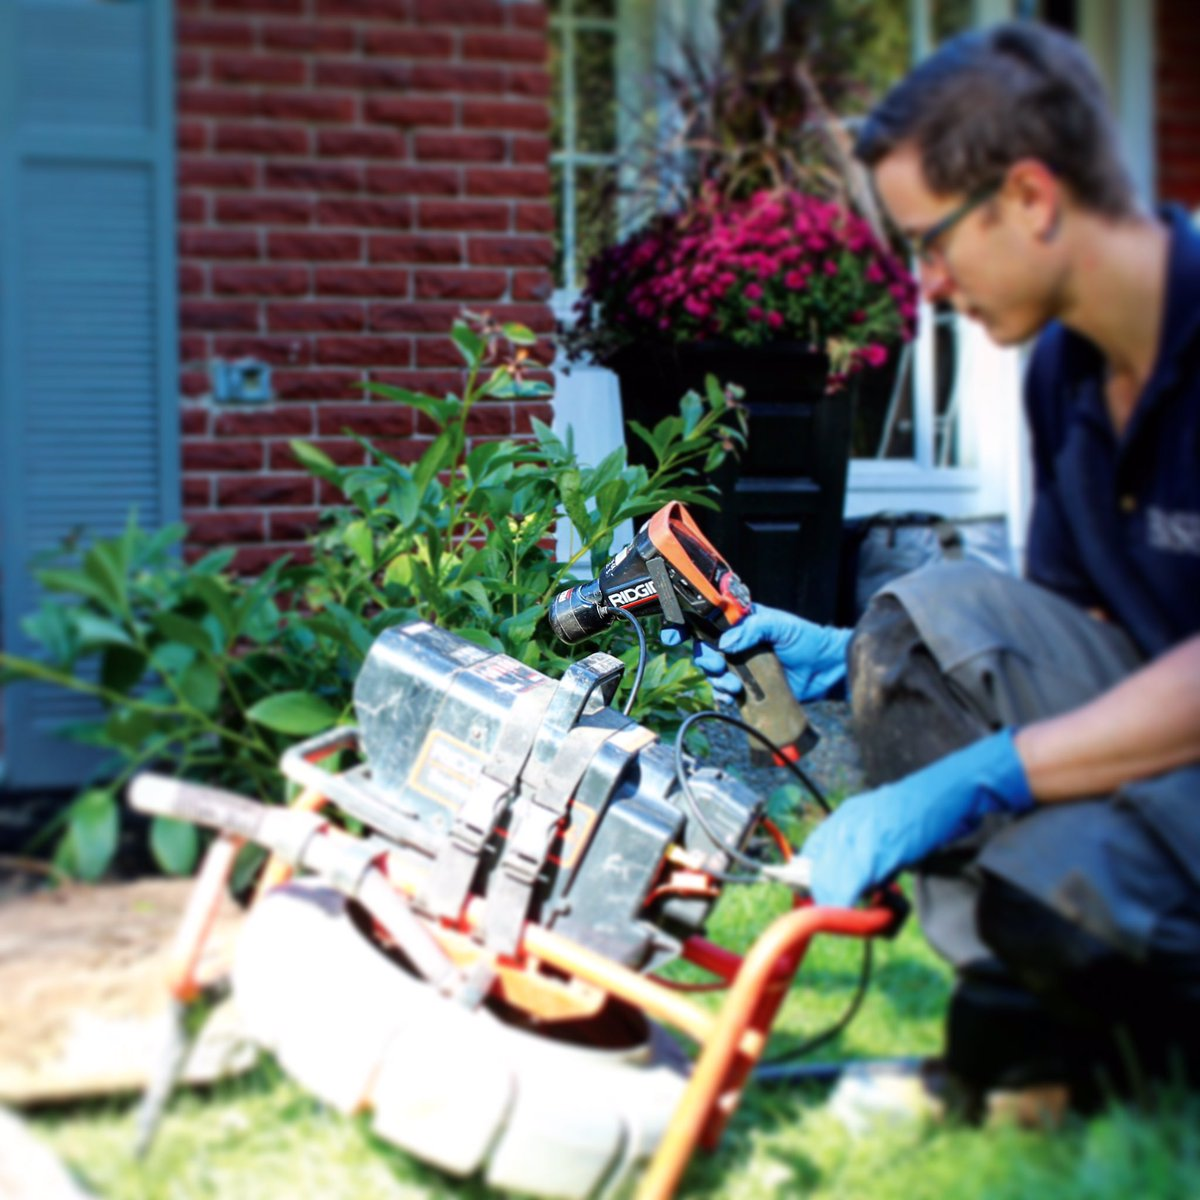 #DYK that #septicsystem inspection cameras are able to locate exact areas &amp; internal condition of septic beds? #nowyouknow #wednesdaywisdom<br>http://pic.twitter.com/AMJGE1B5rO